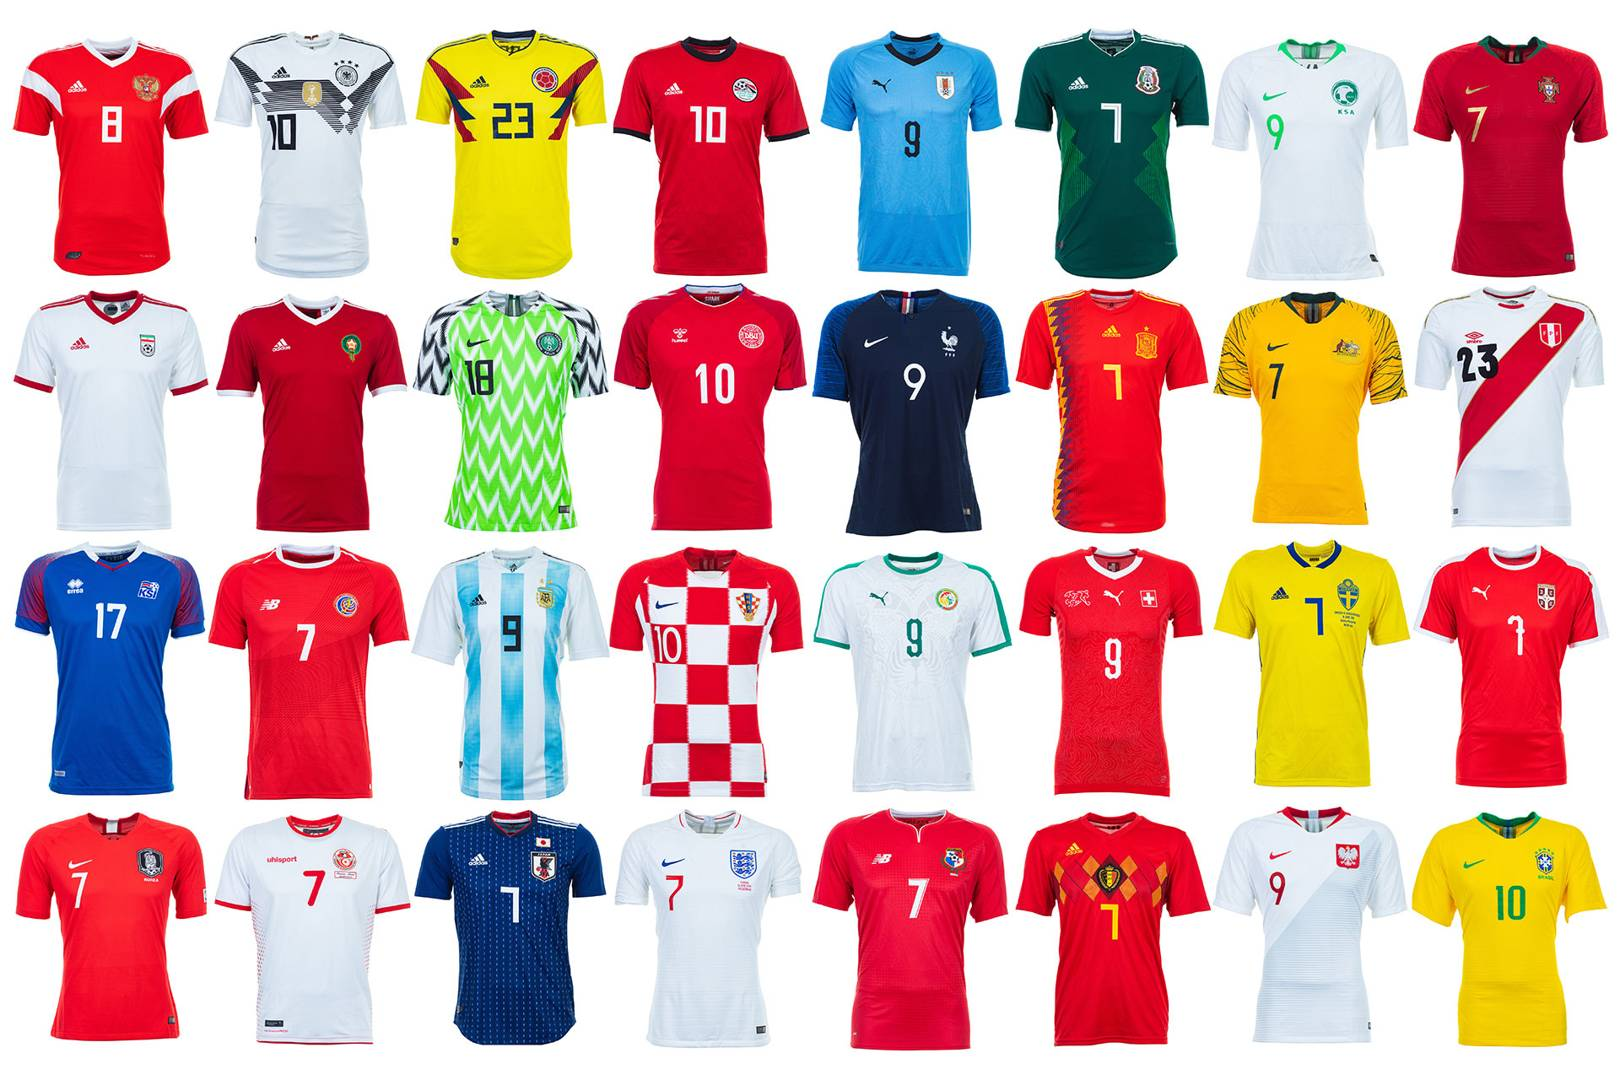 aa0a745b28f World Cup 2018 kits ranked: from worst to best | British GQ